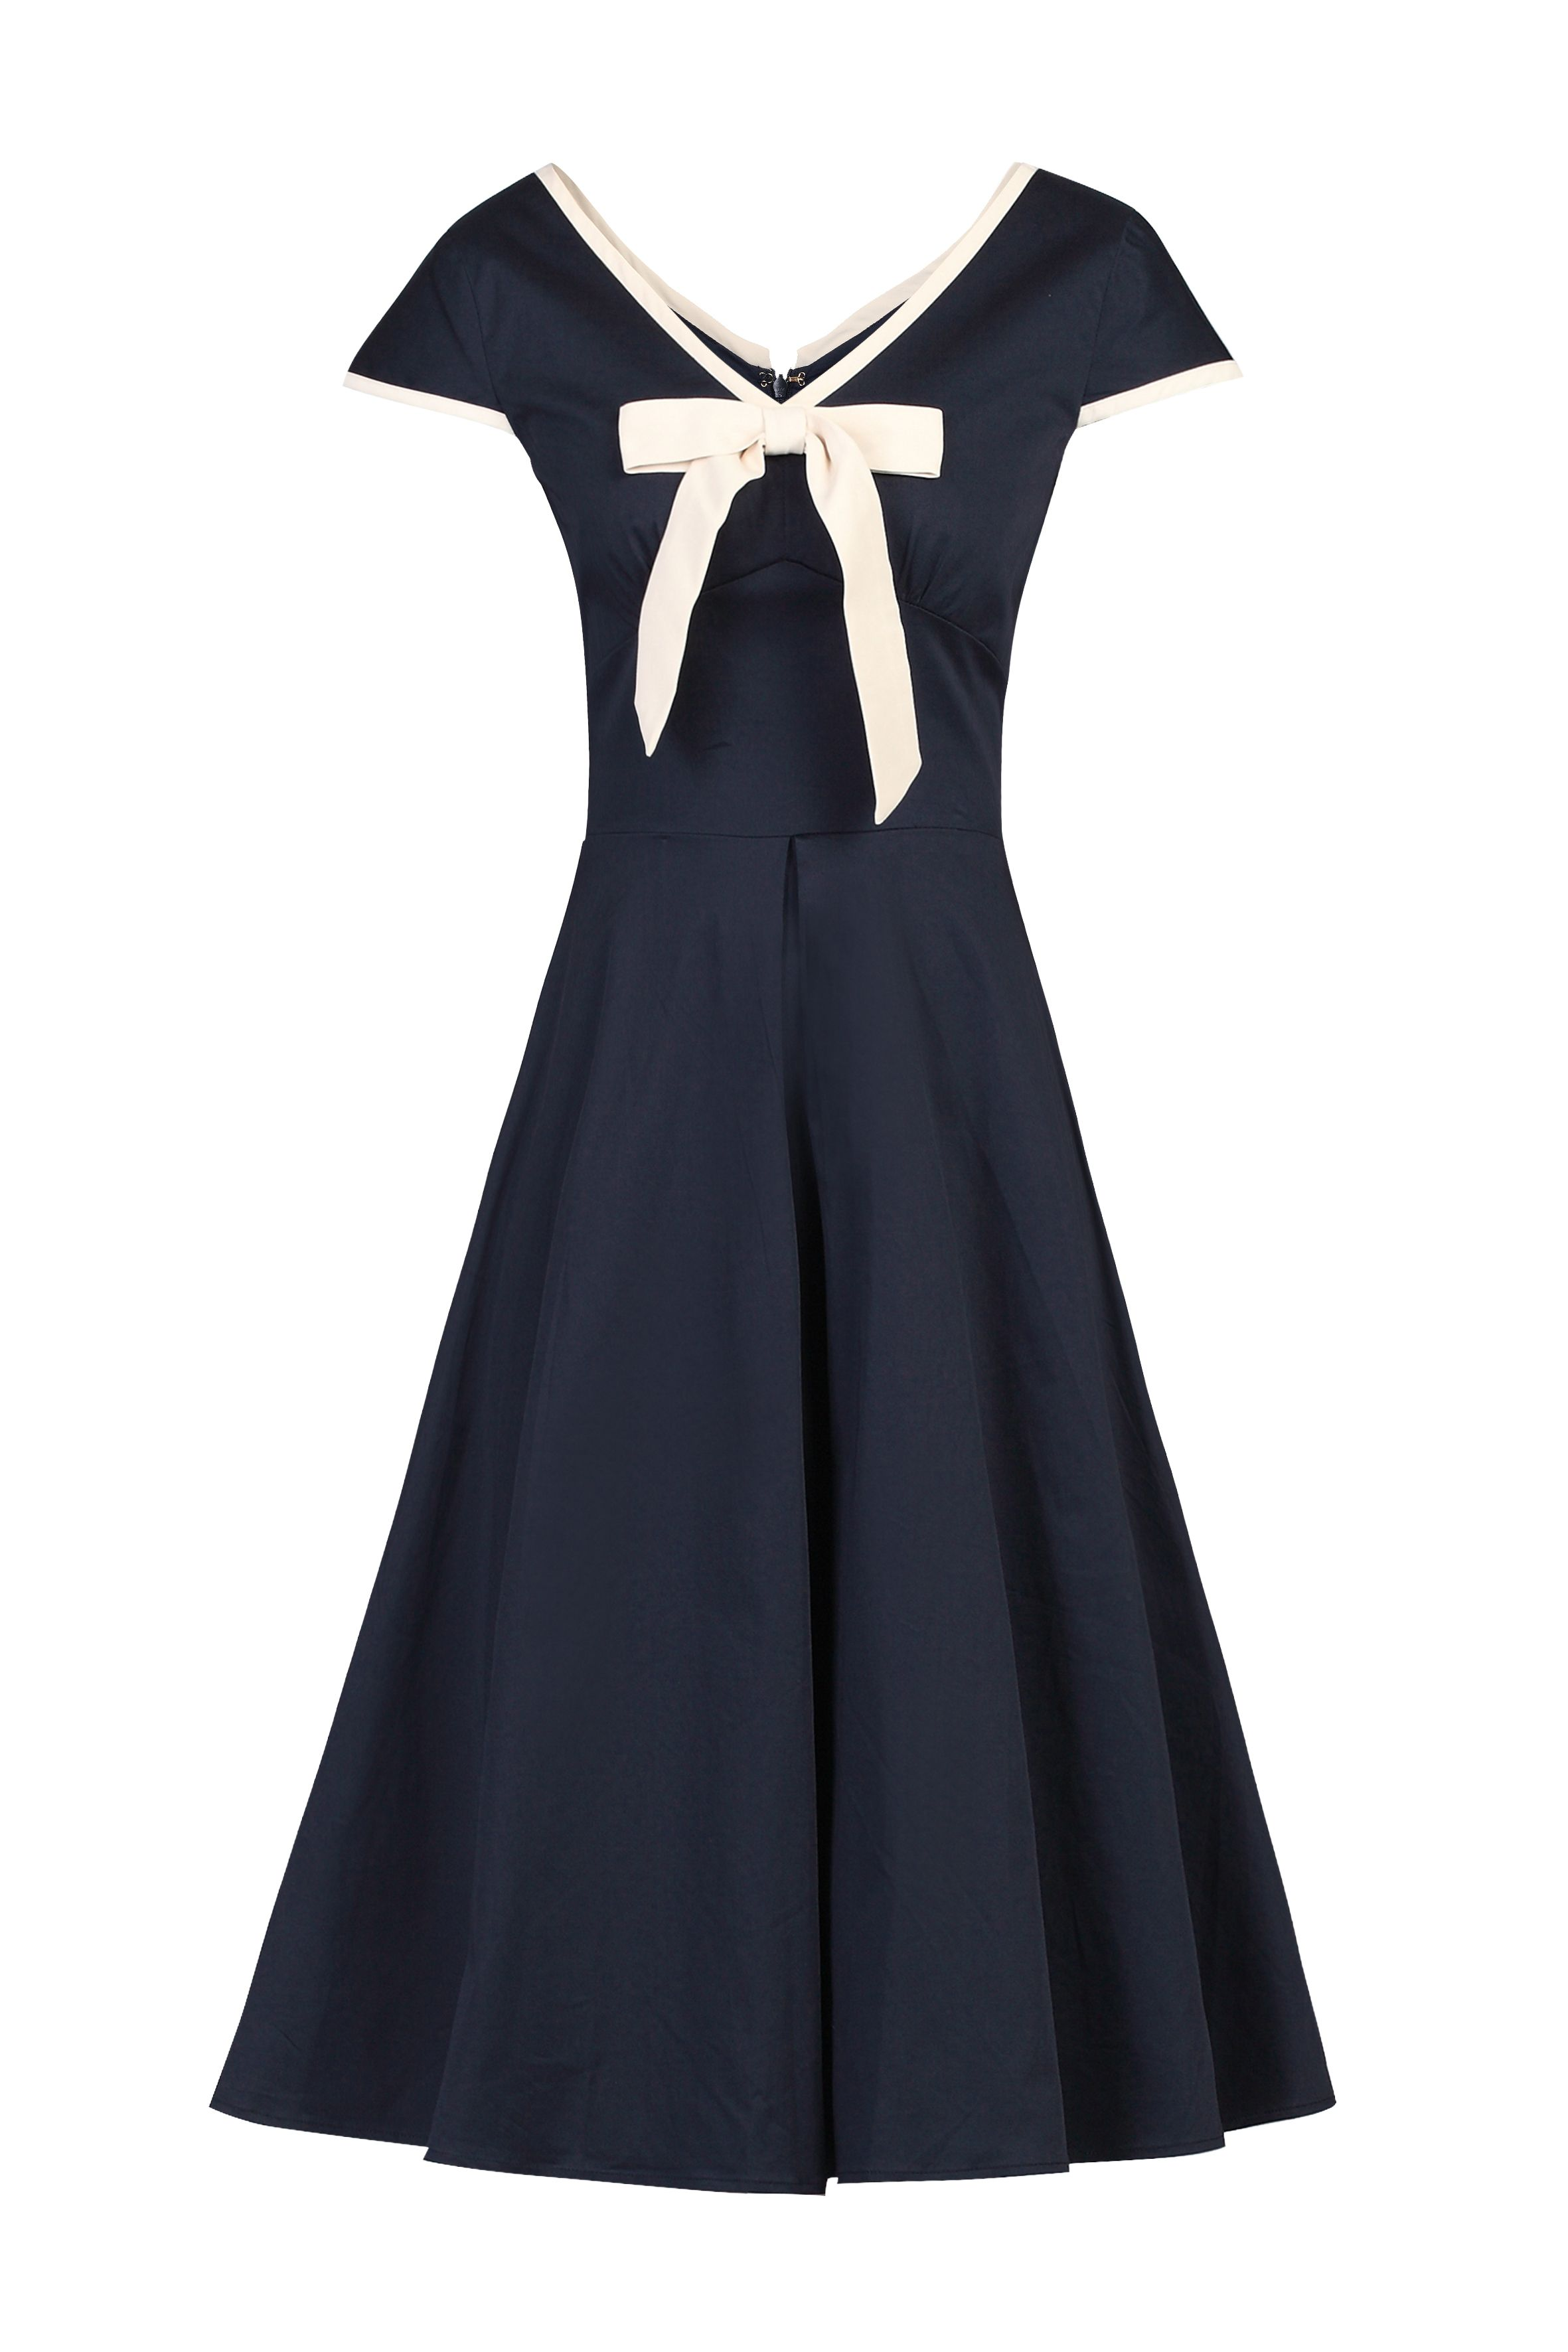 Jolie Moi Bow Detail 50s Flare Dress, Blue